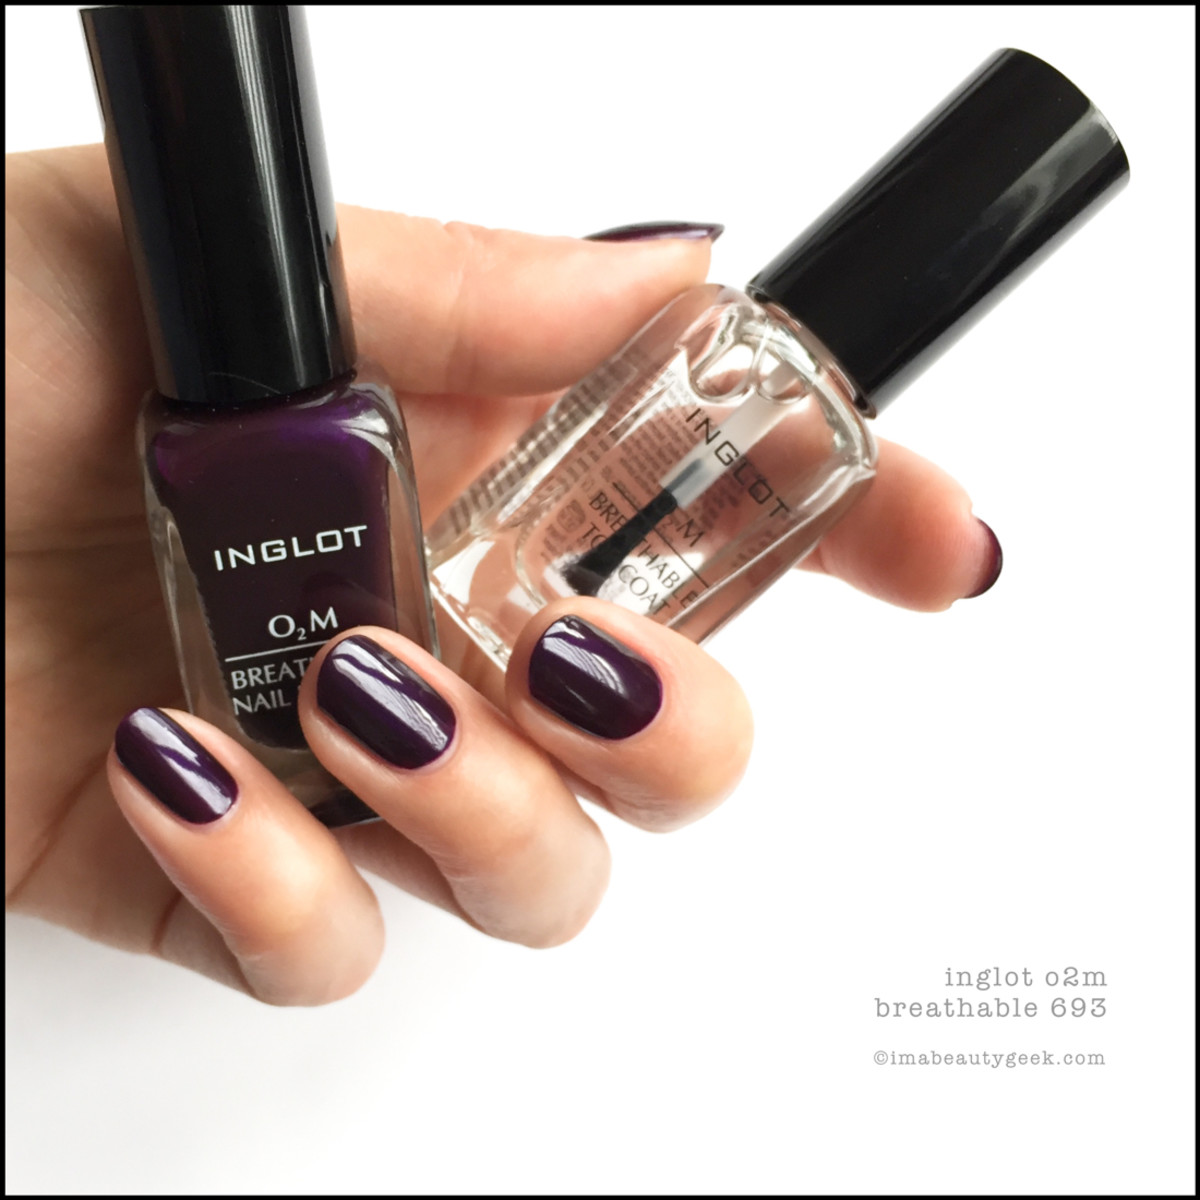 Inglot O2M Breathable 693_Inglot Breathable Nail Polish Swatches